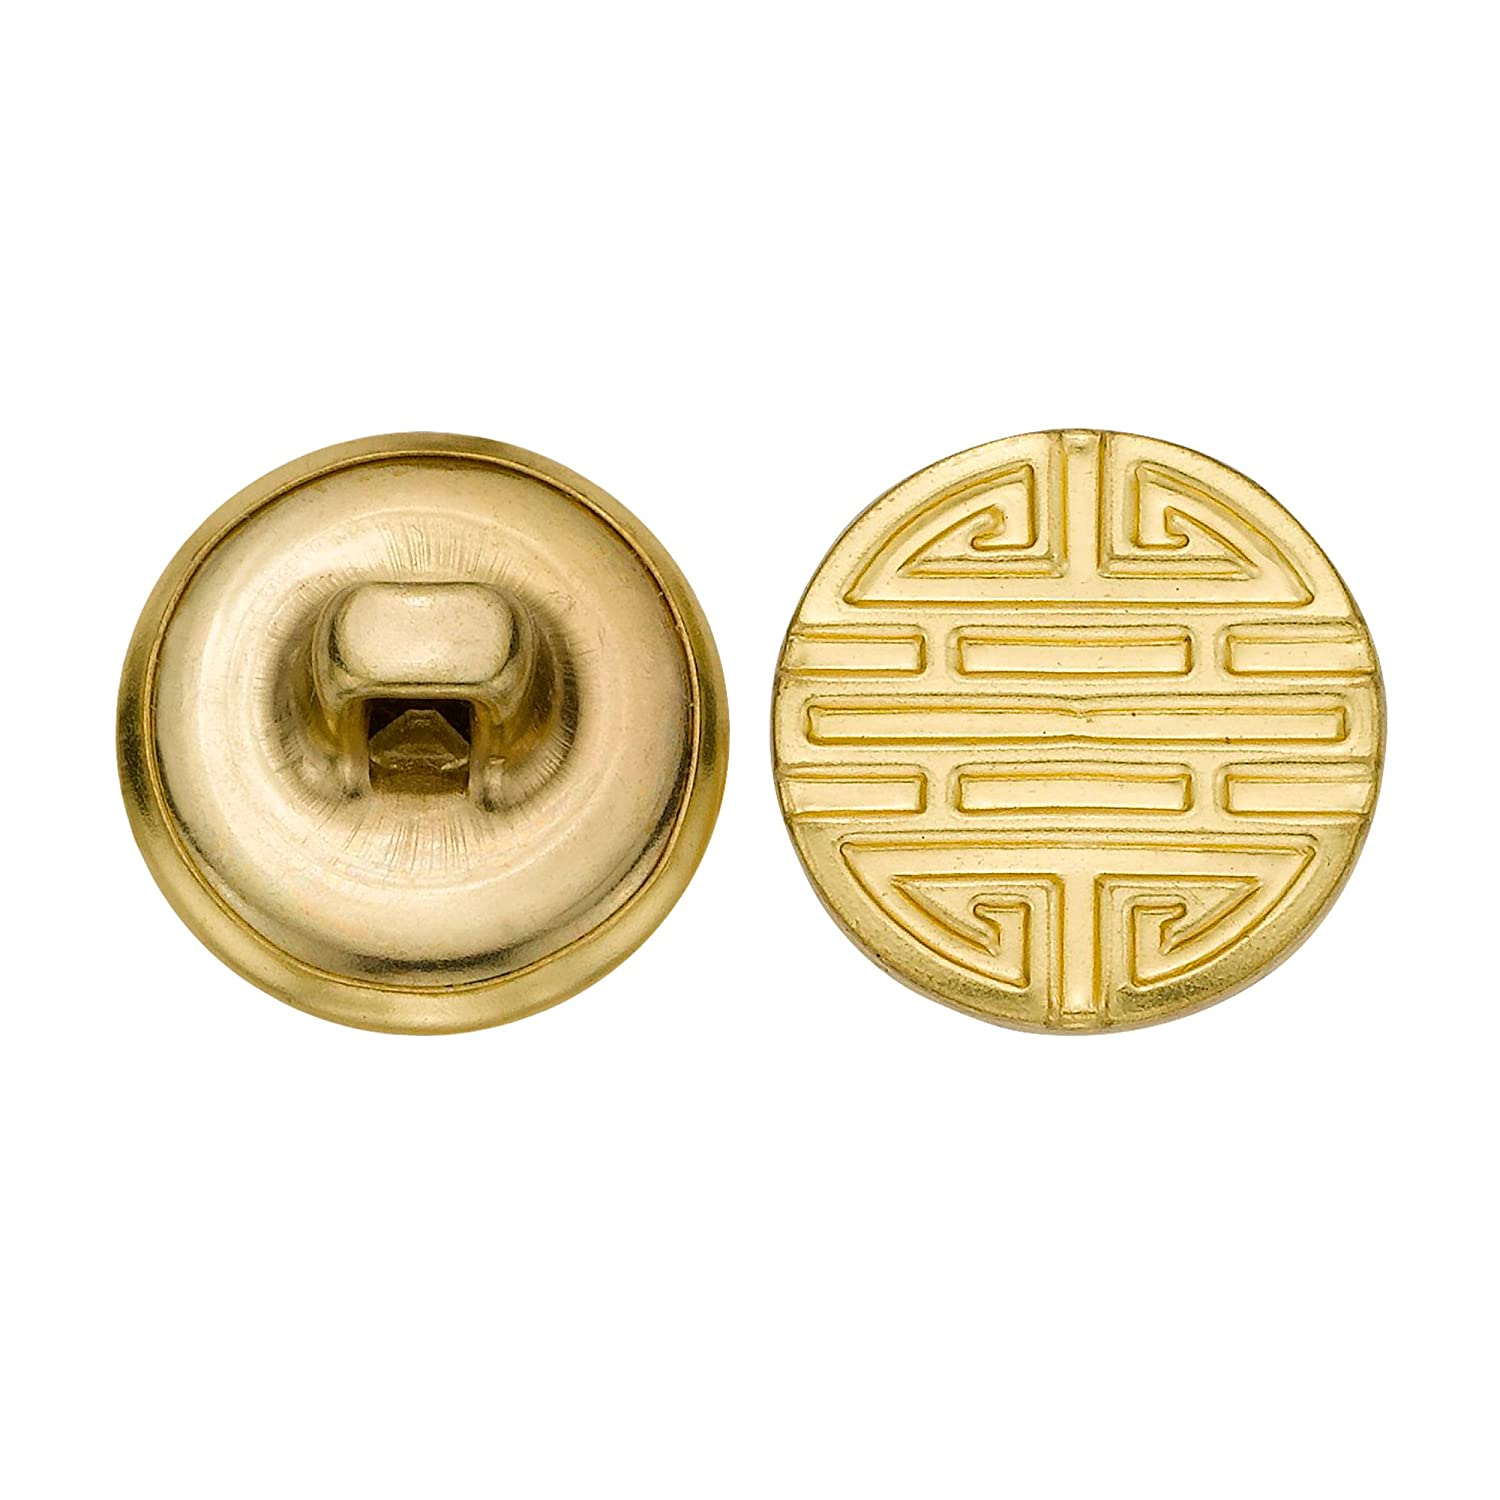 C/&C Metal Products 5247 Modern Metal Button Gold Size 24 Ligne 72-Pack